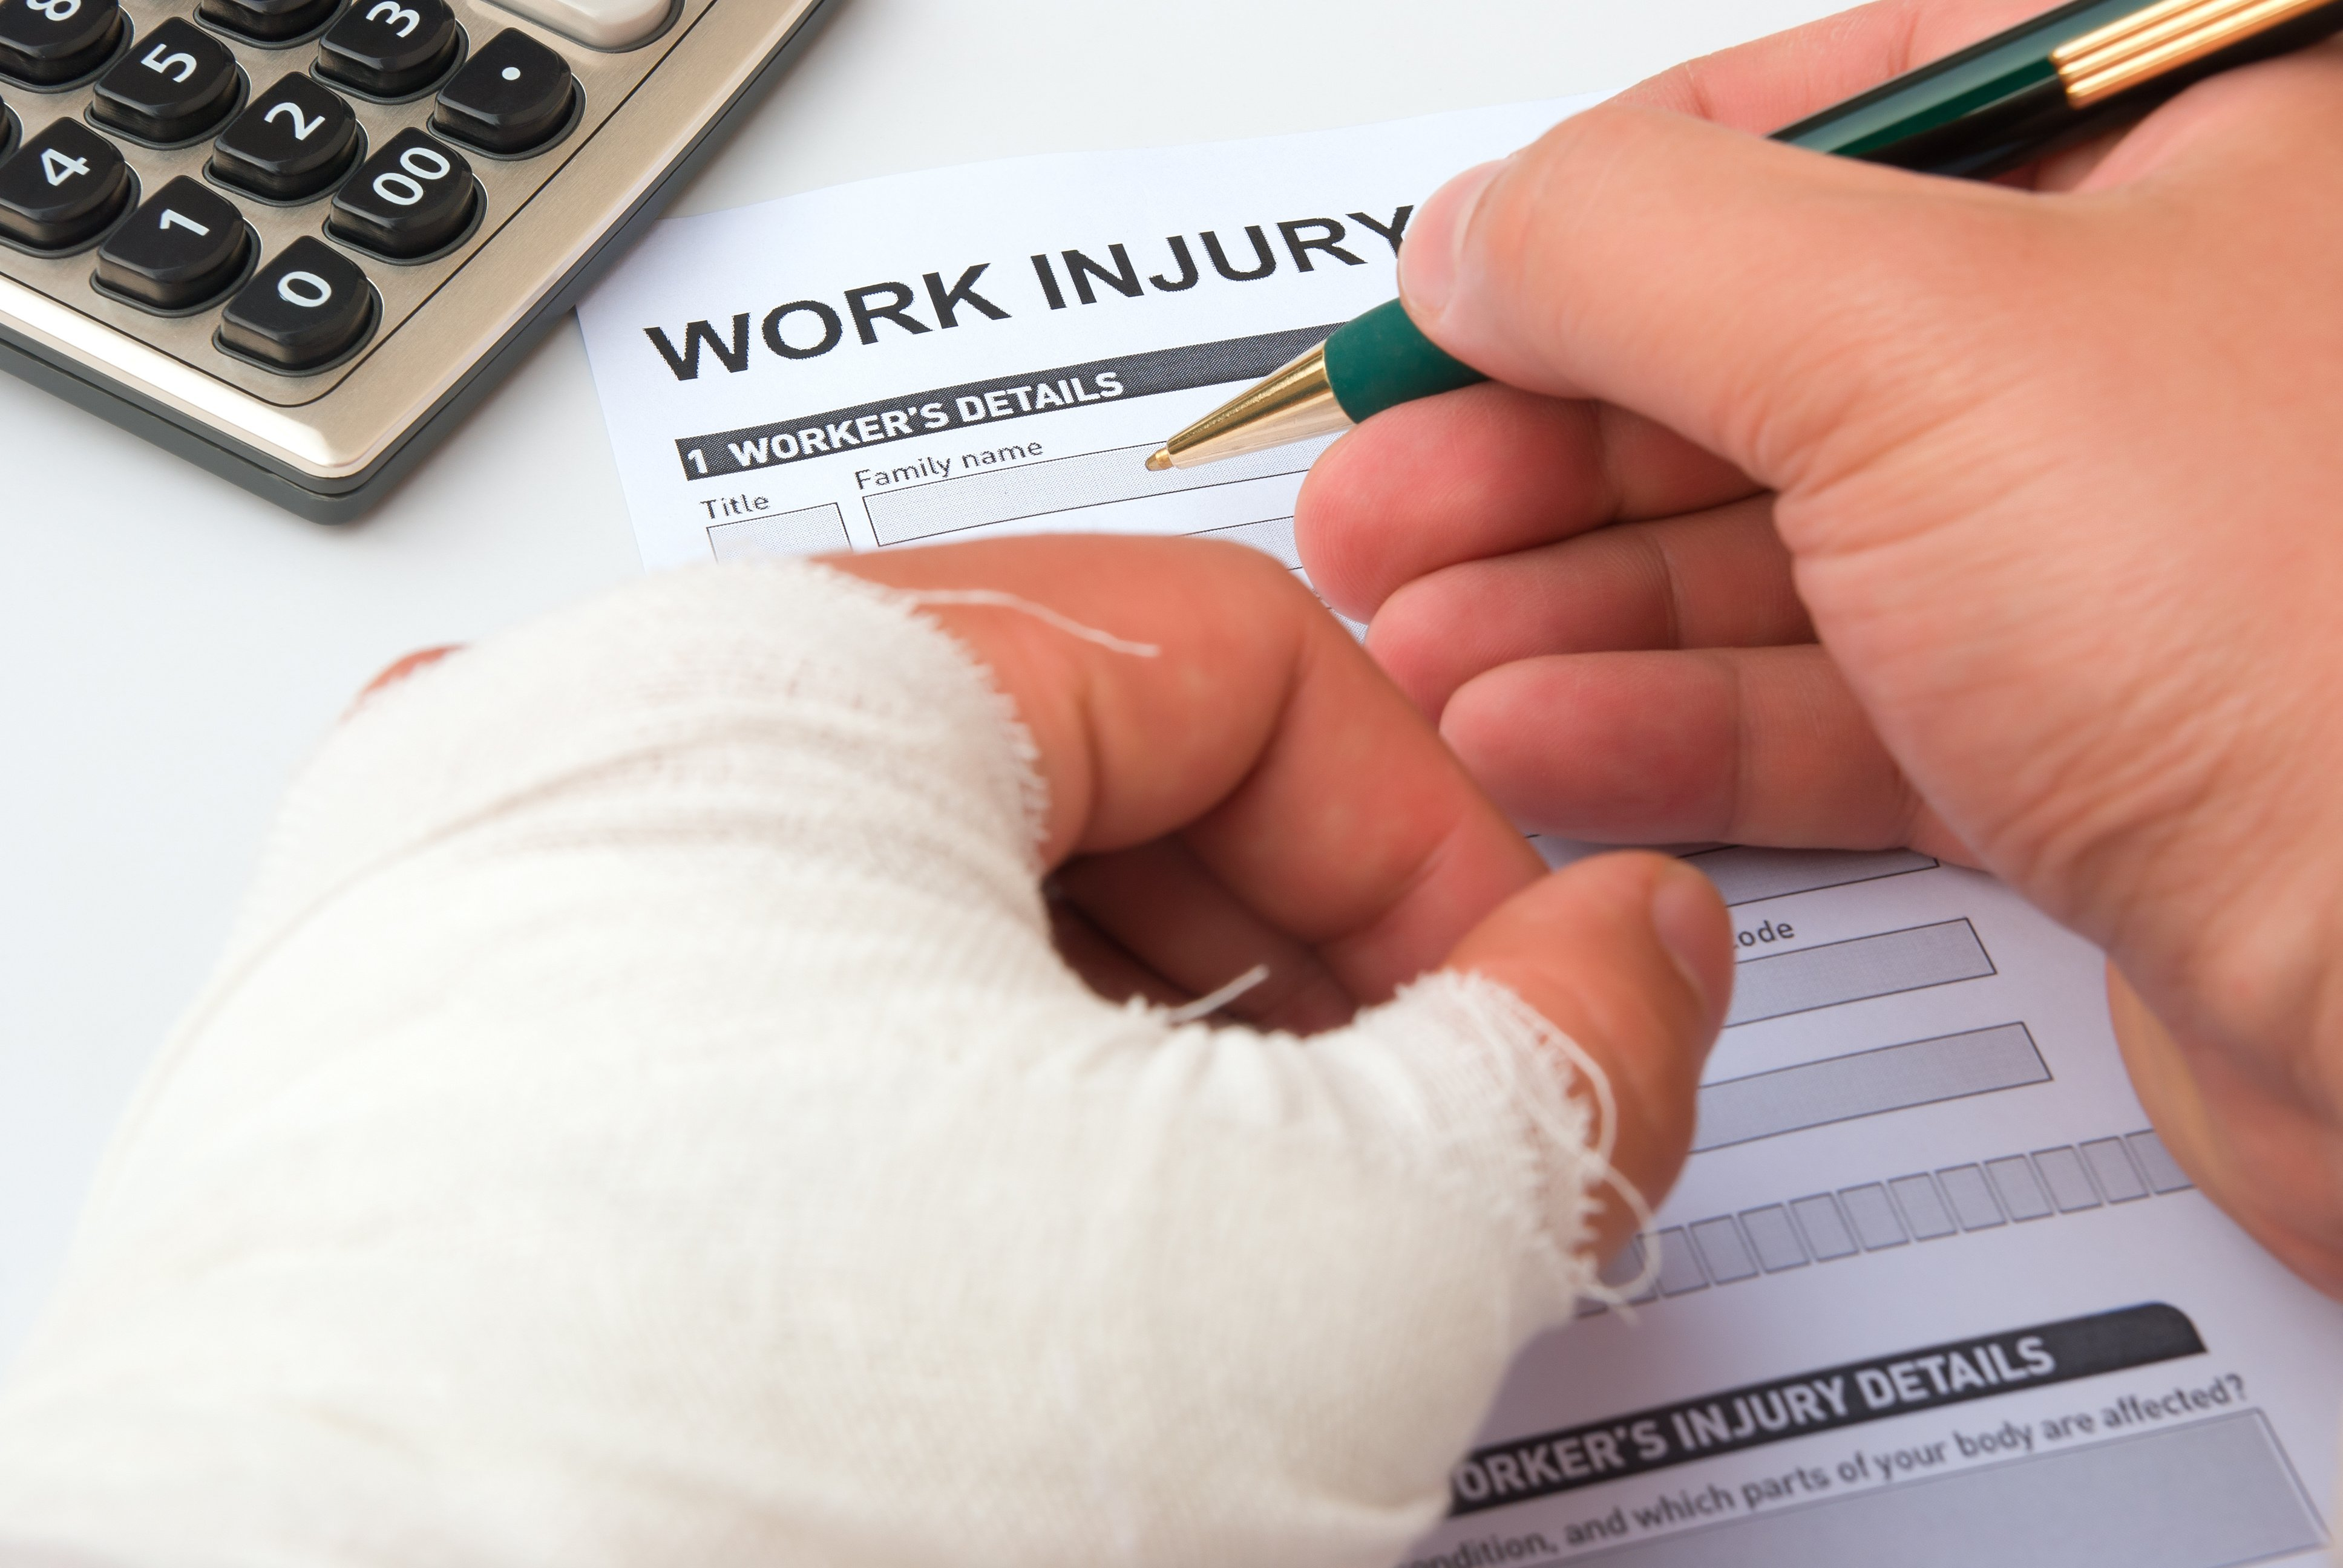 An injured worker fills out an injury form